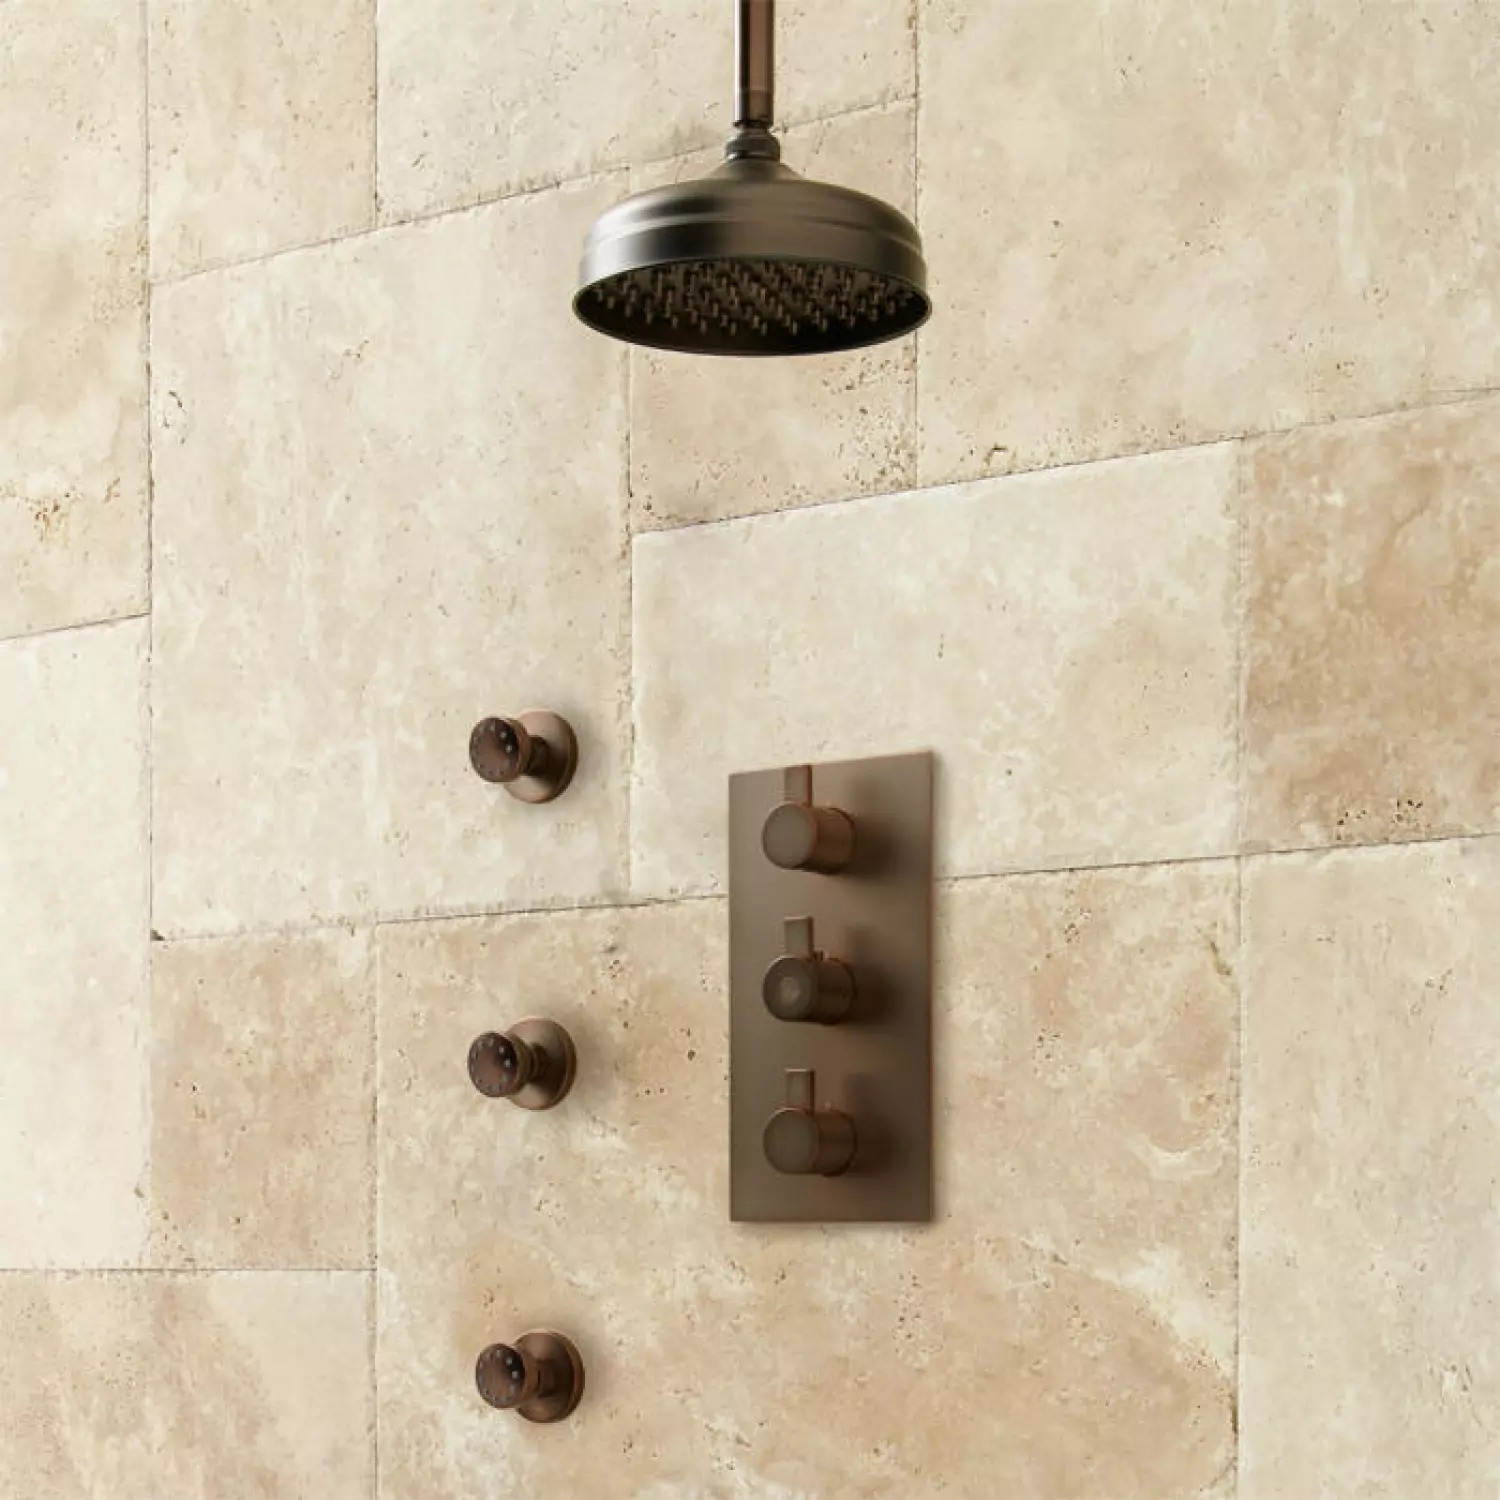 Buy Lenox Shower System With Body Jets In Oil Rubbed Bronze Finish Discounts Up To 45 Msrp